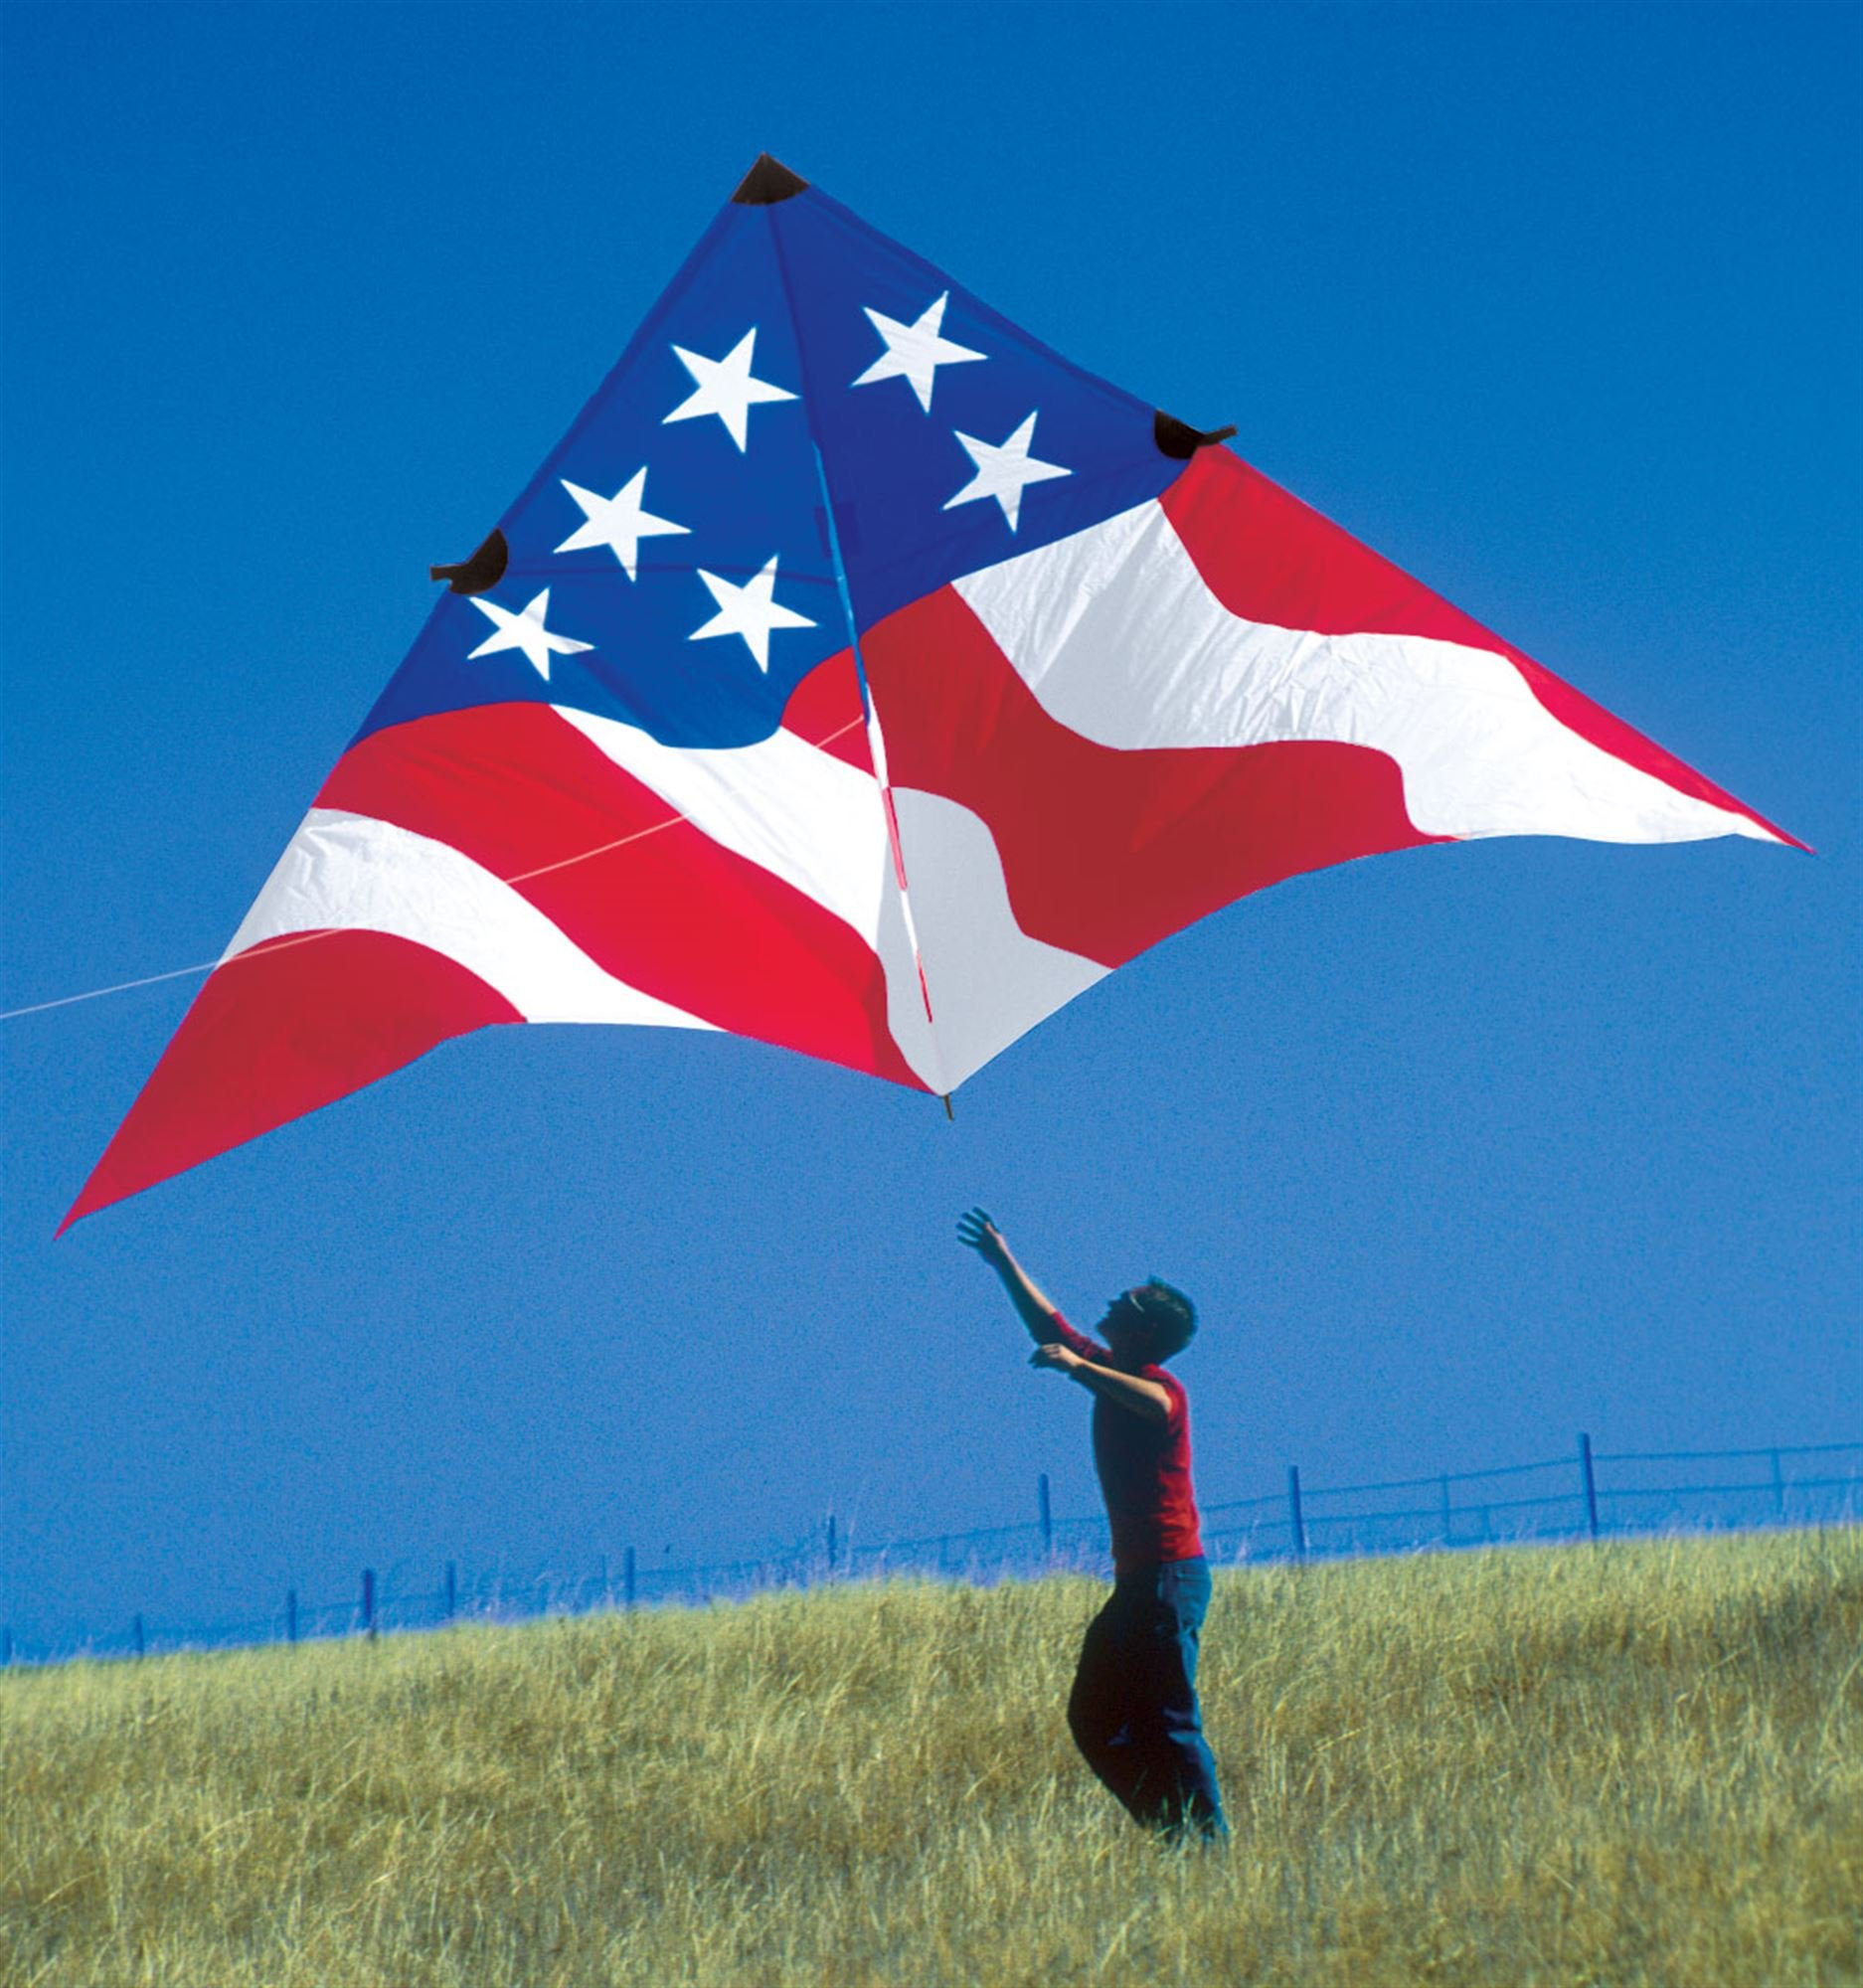 19ft. Patriotic Delta Kite by Premier Kites